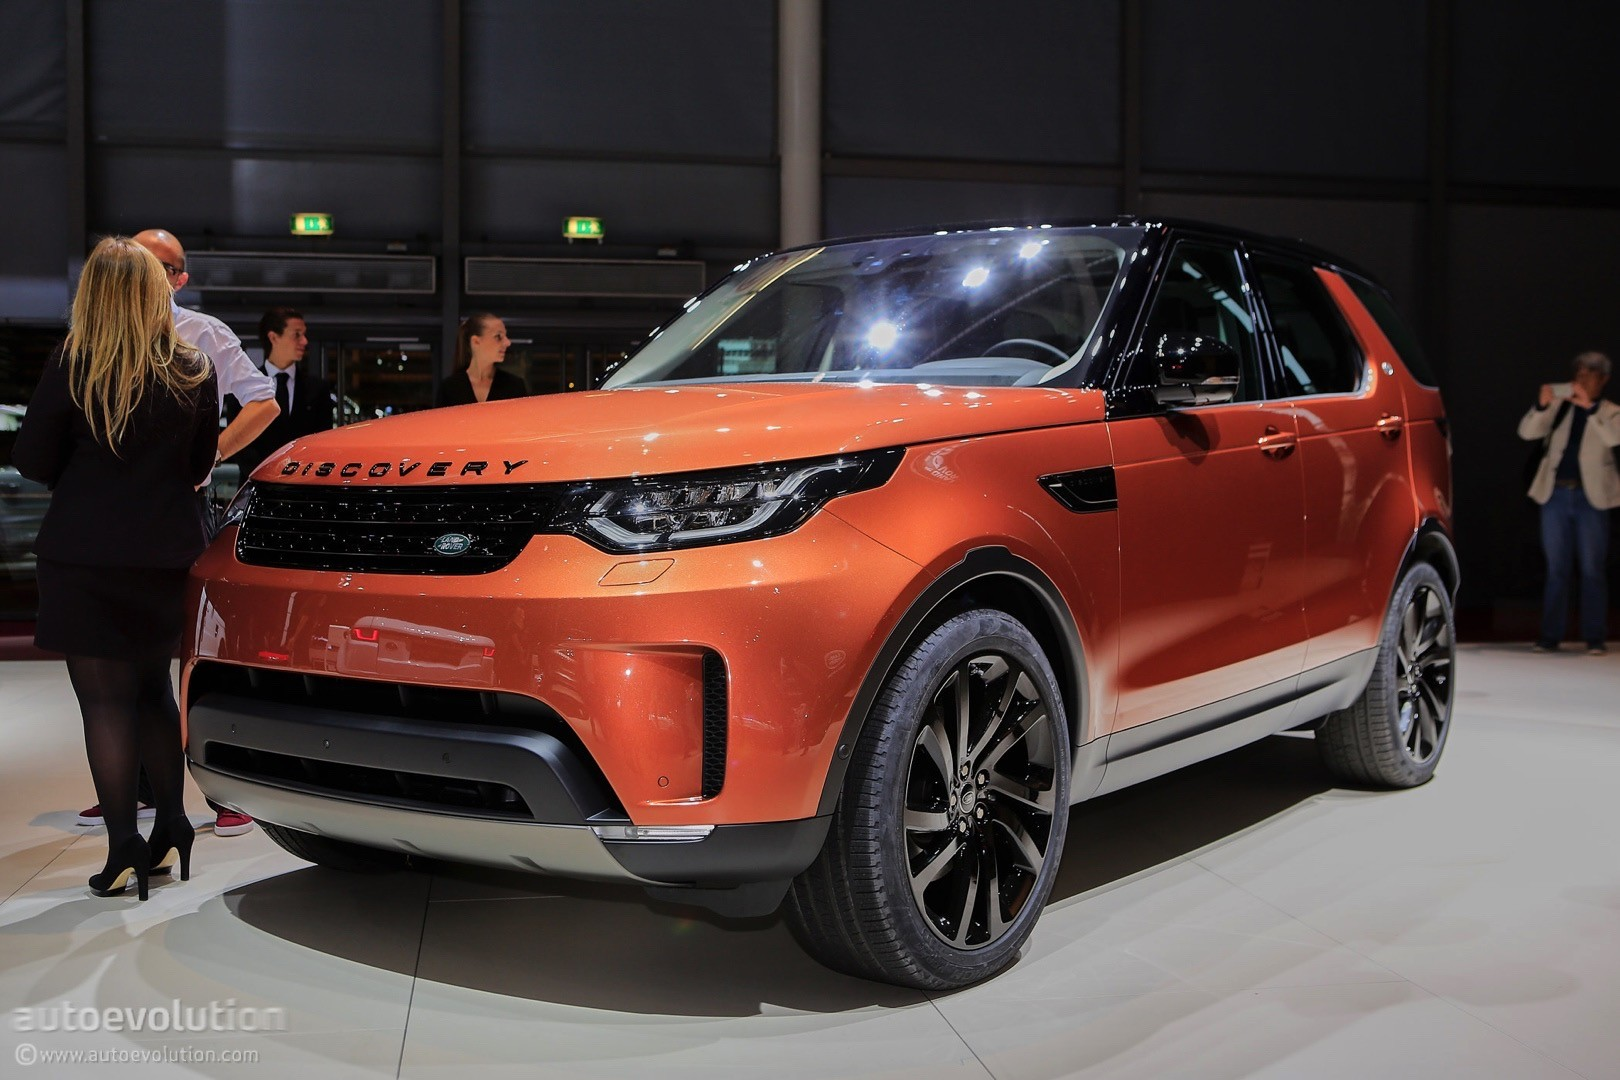 2017 Land Rover Discovery Presented In Paris As the Brand ...